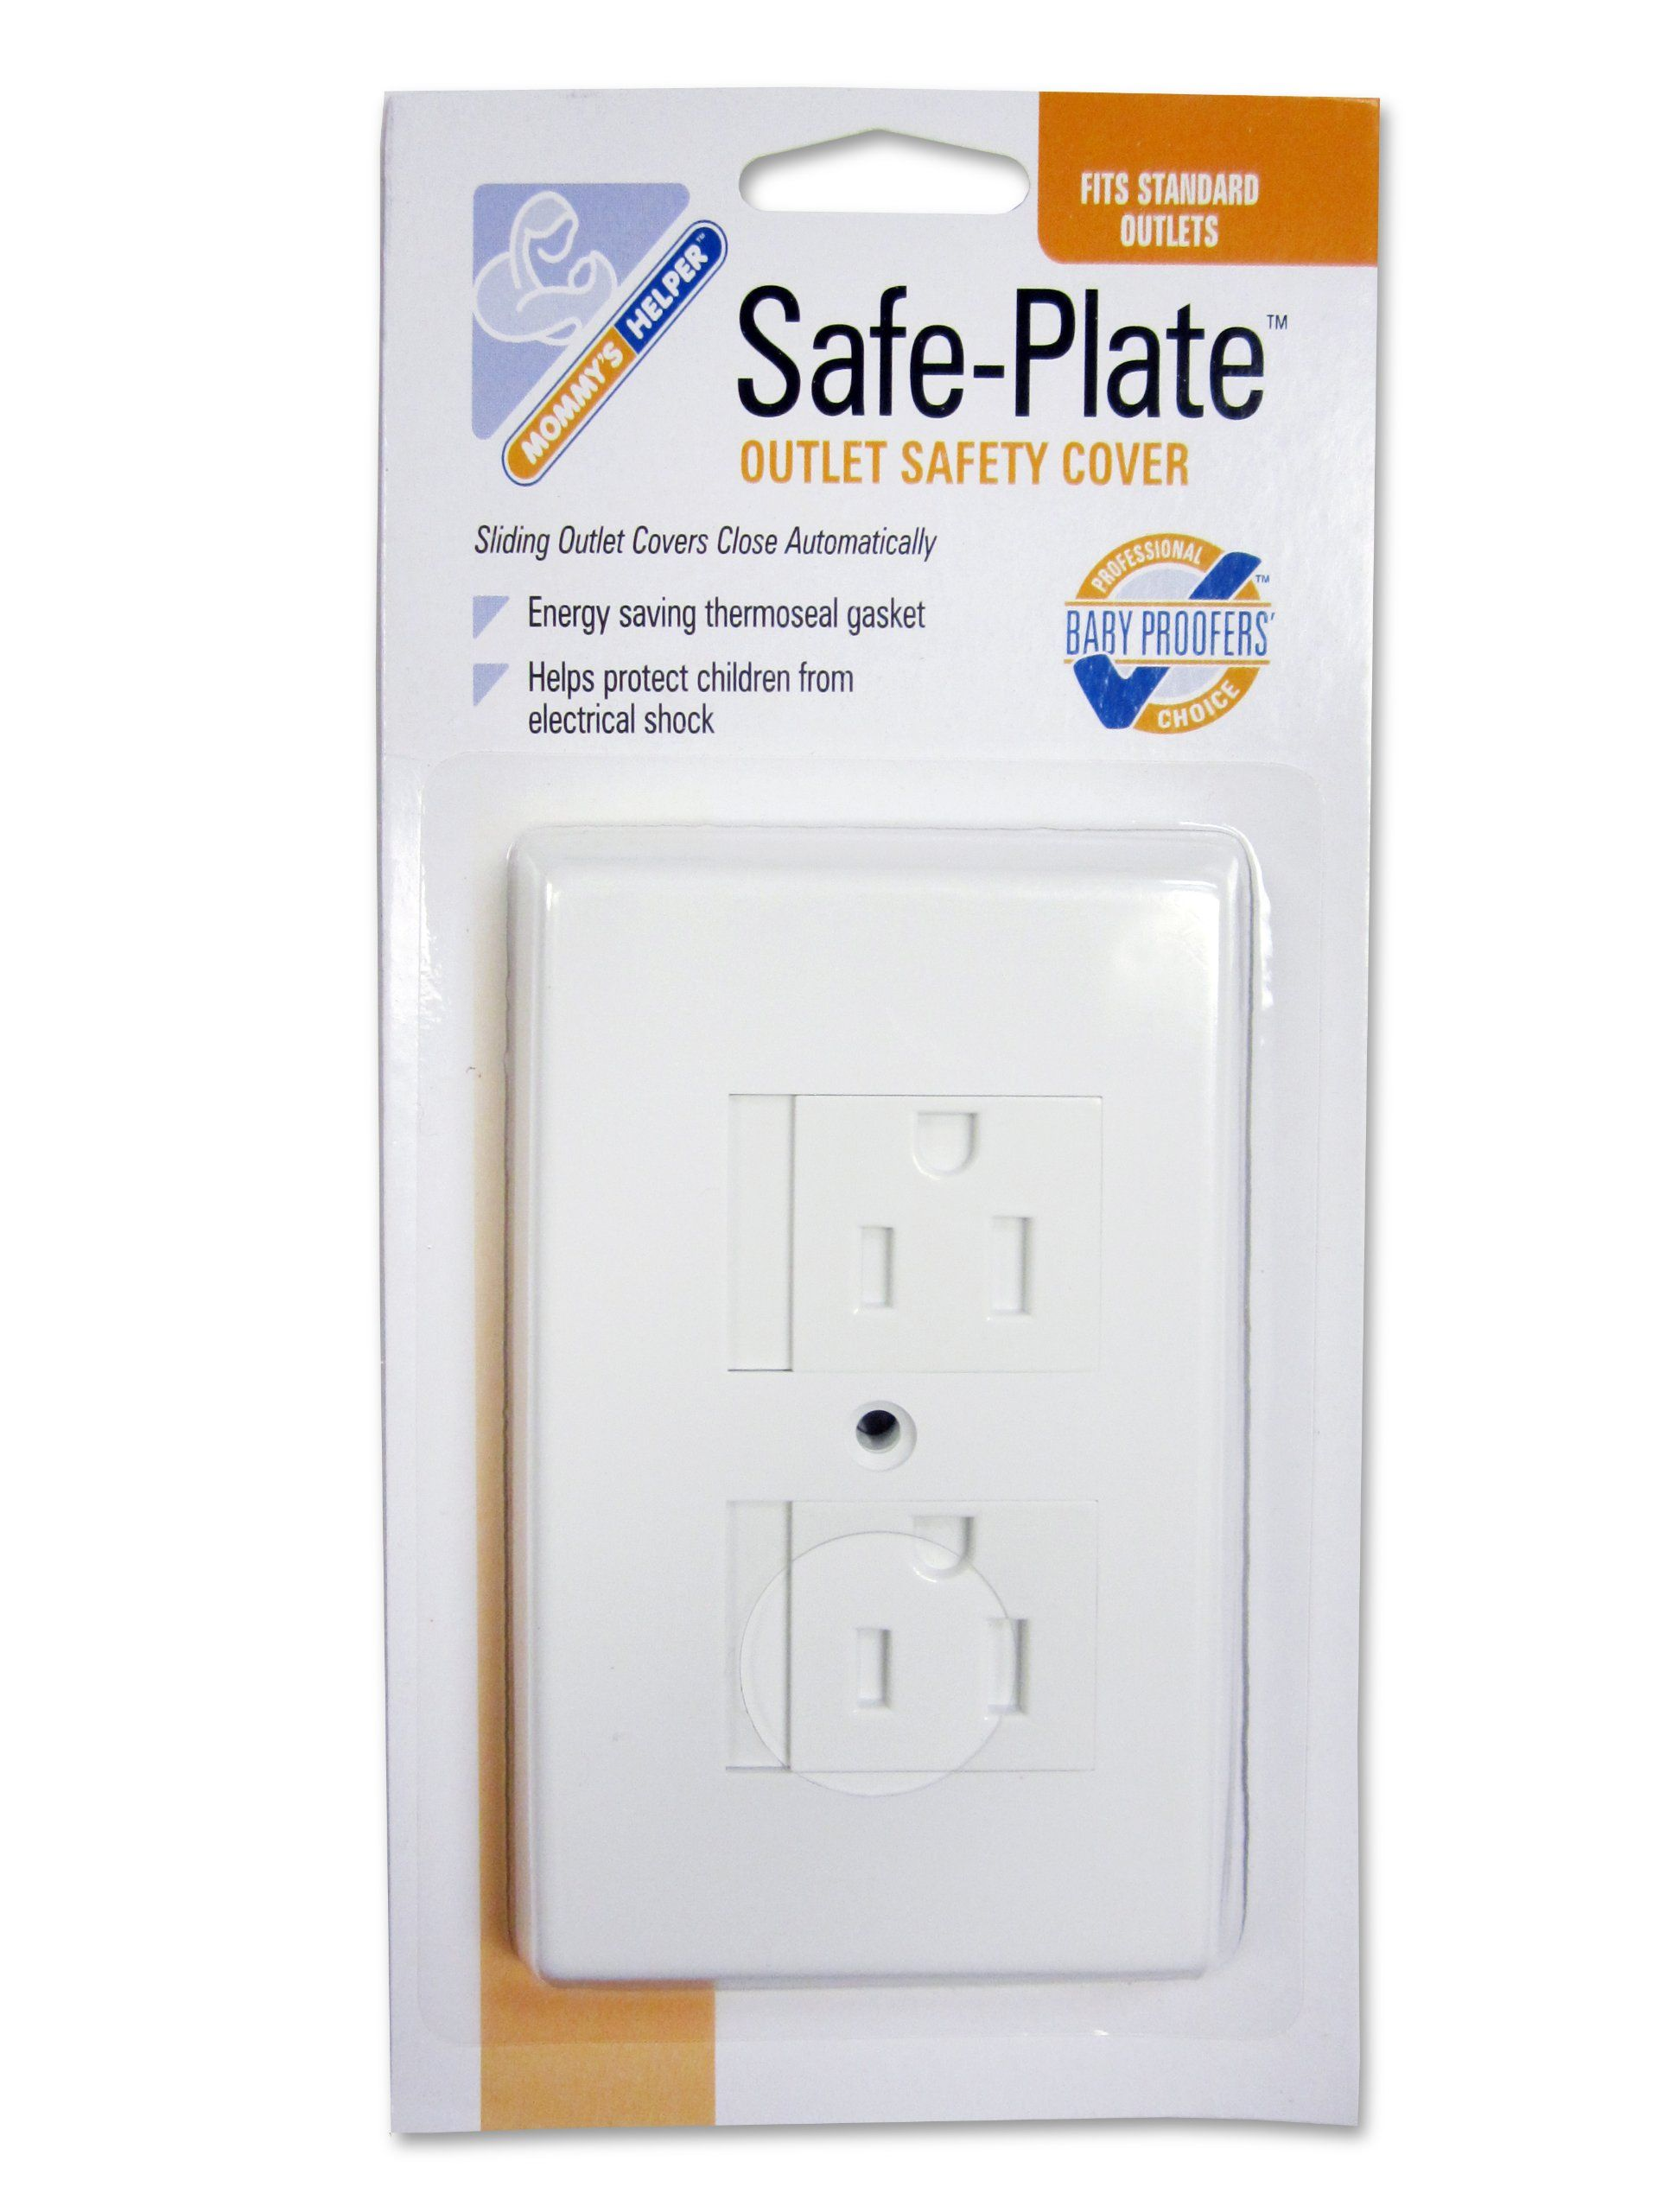 White Electrical Outlet Covers Amazon  Mommys Helper Safe Plate Electrical Outlet Covers